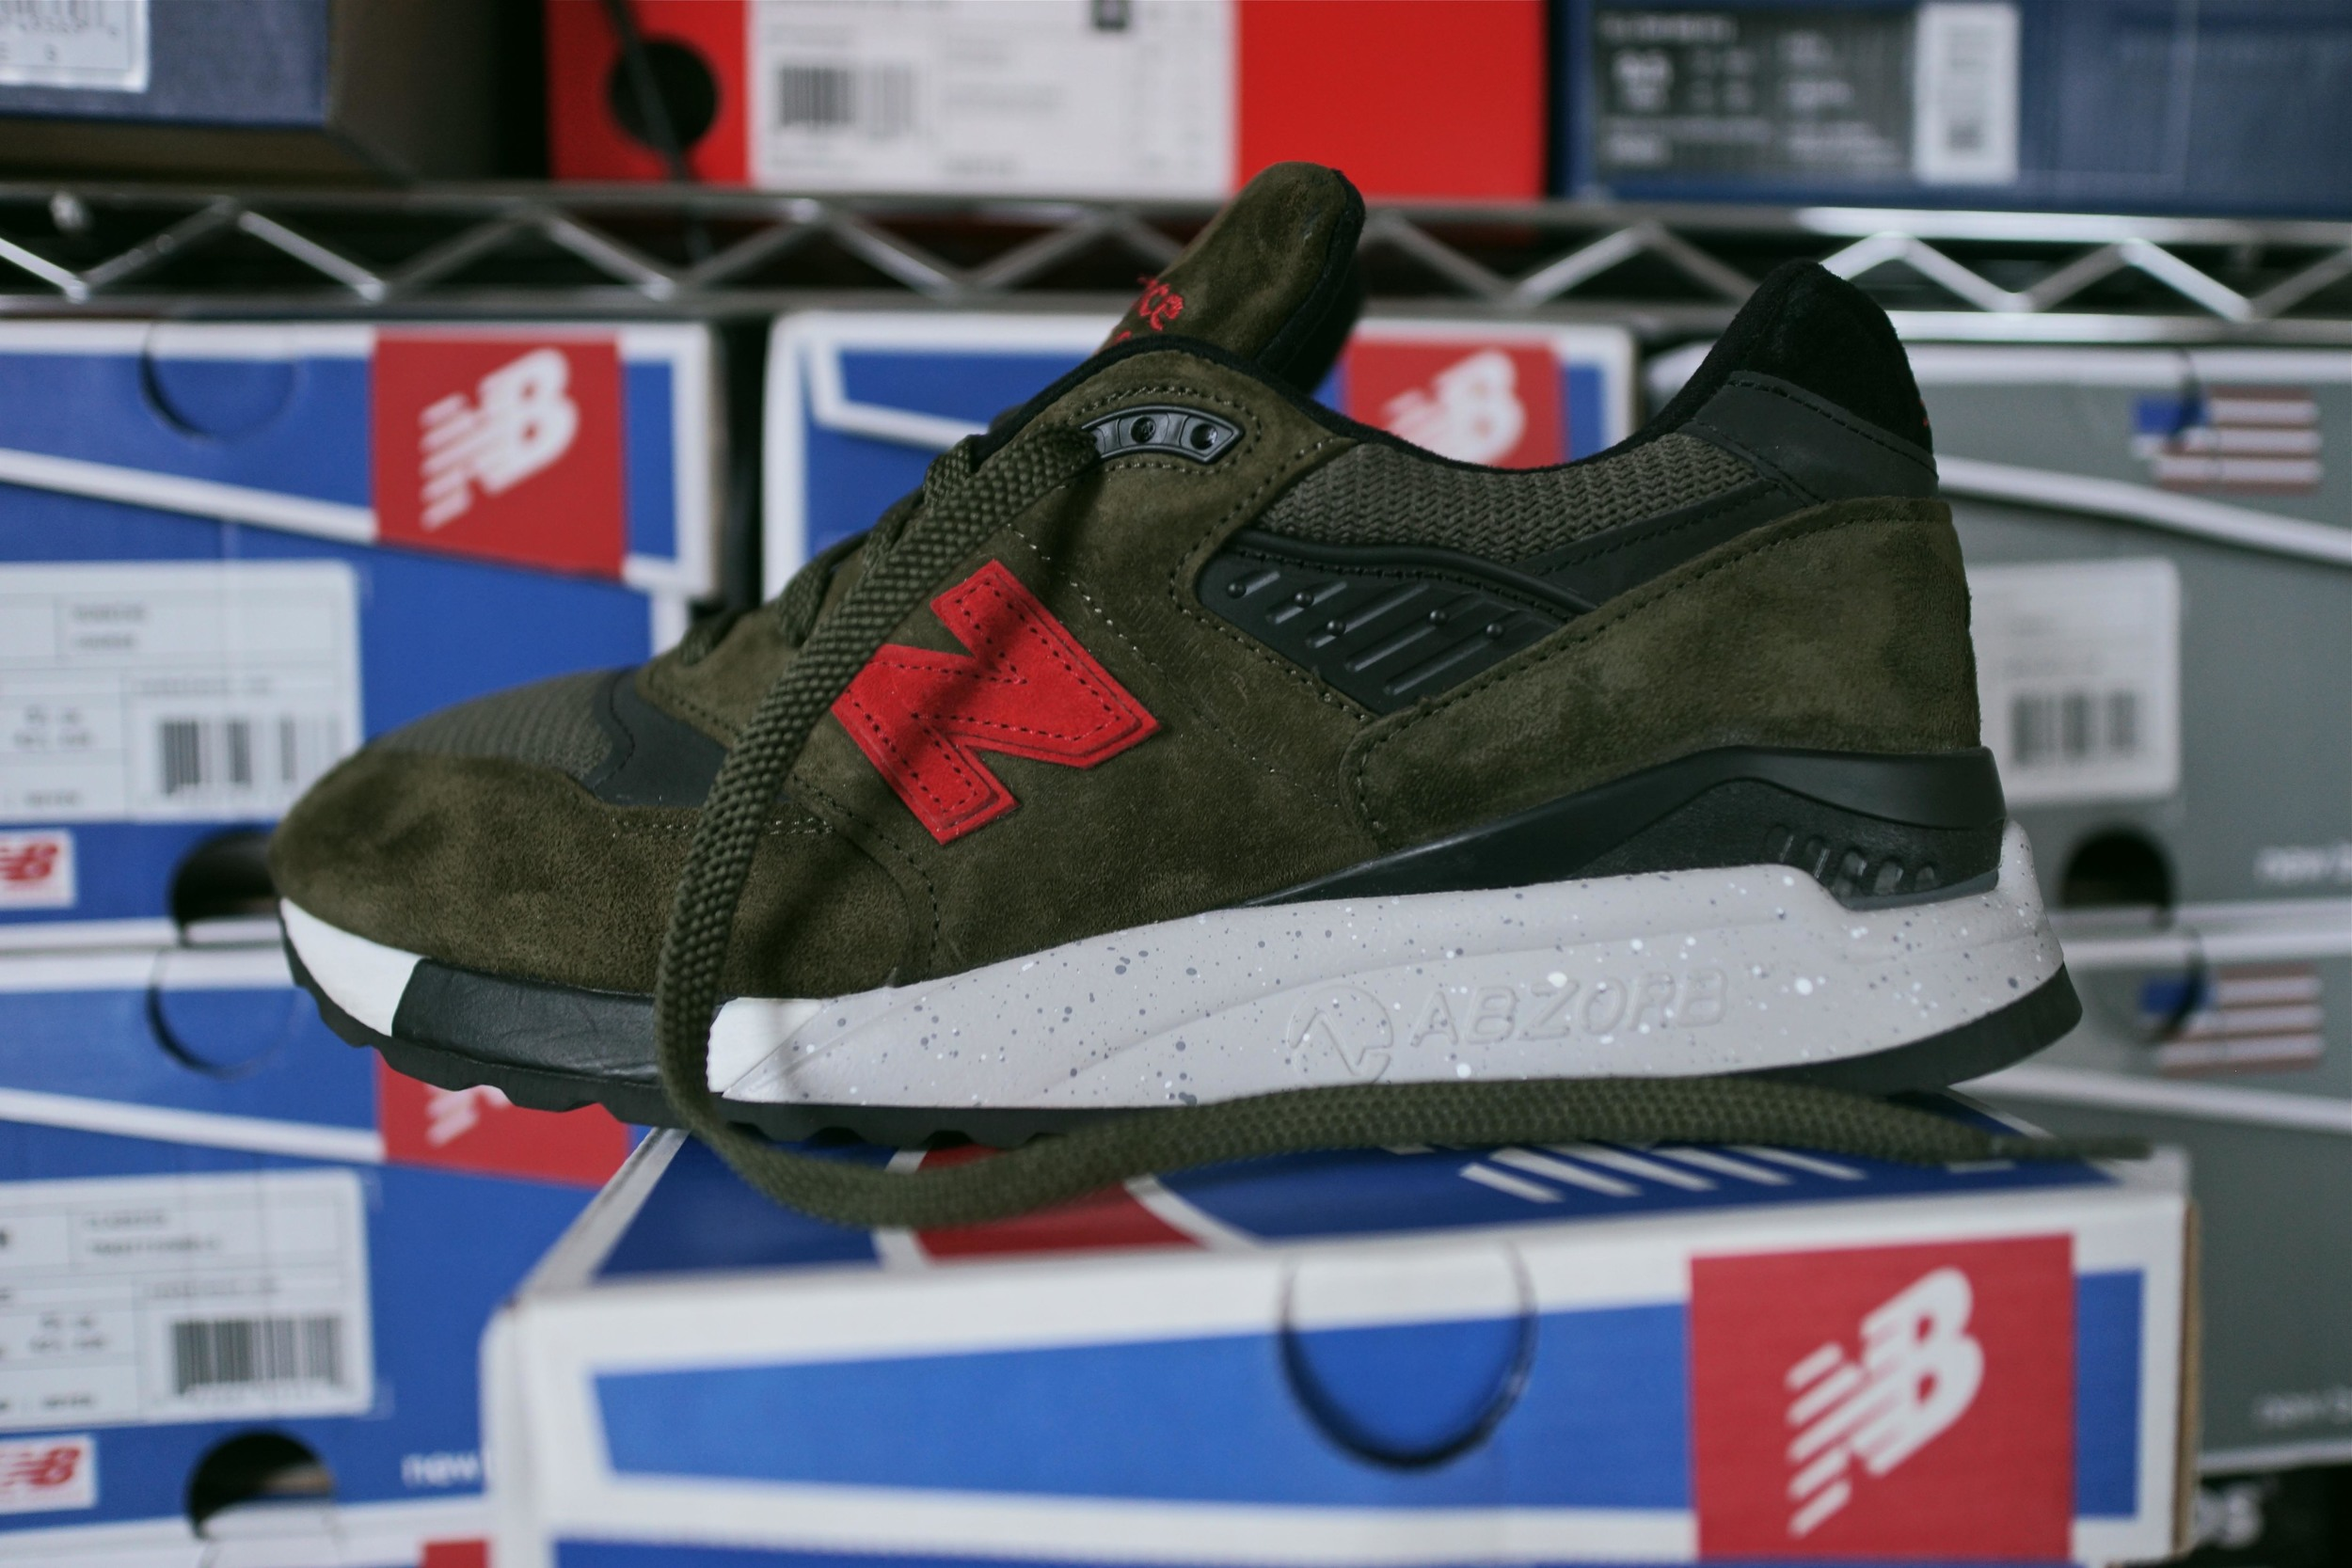 New Balance 998 (Made in U.S.A.) by JD